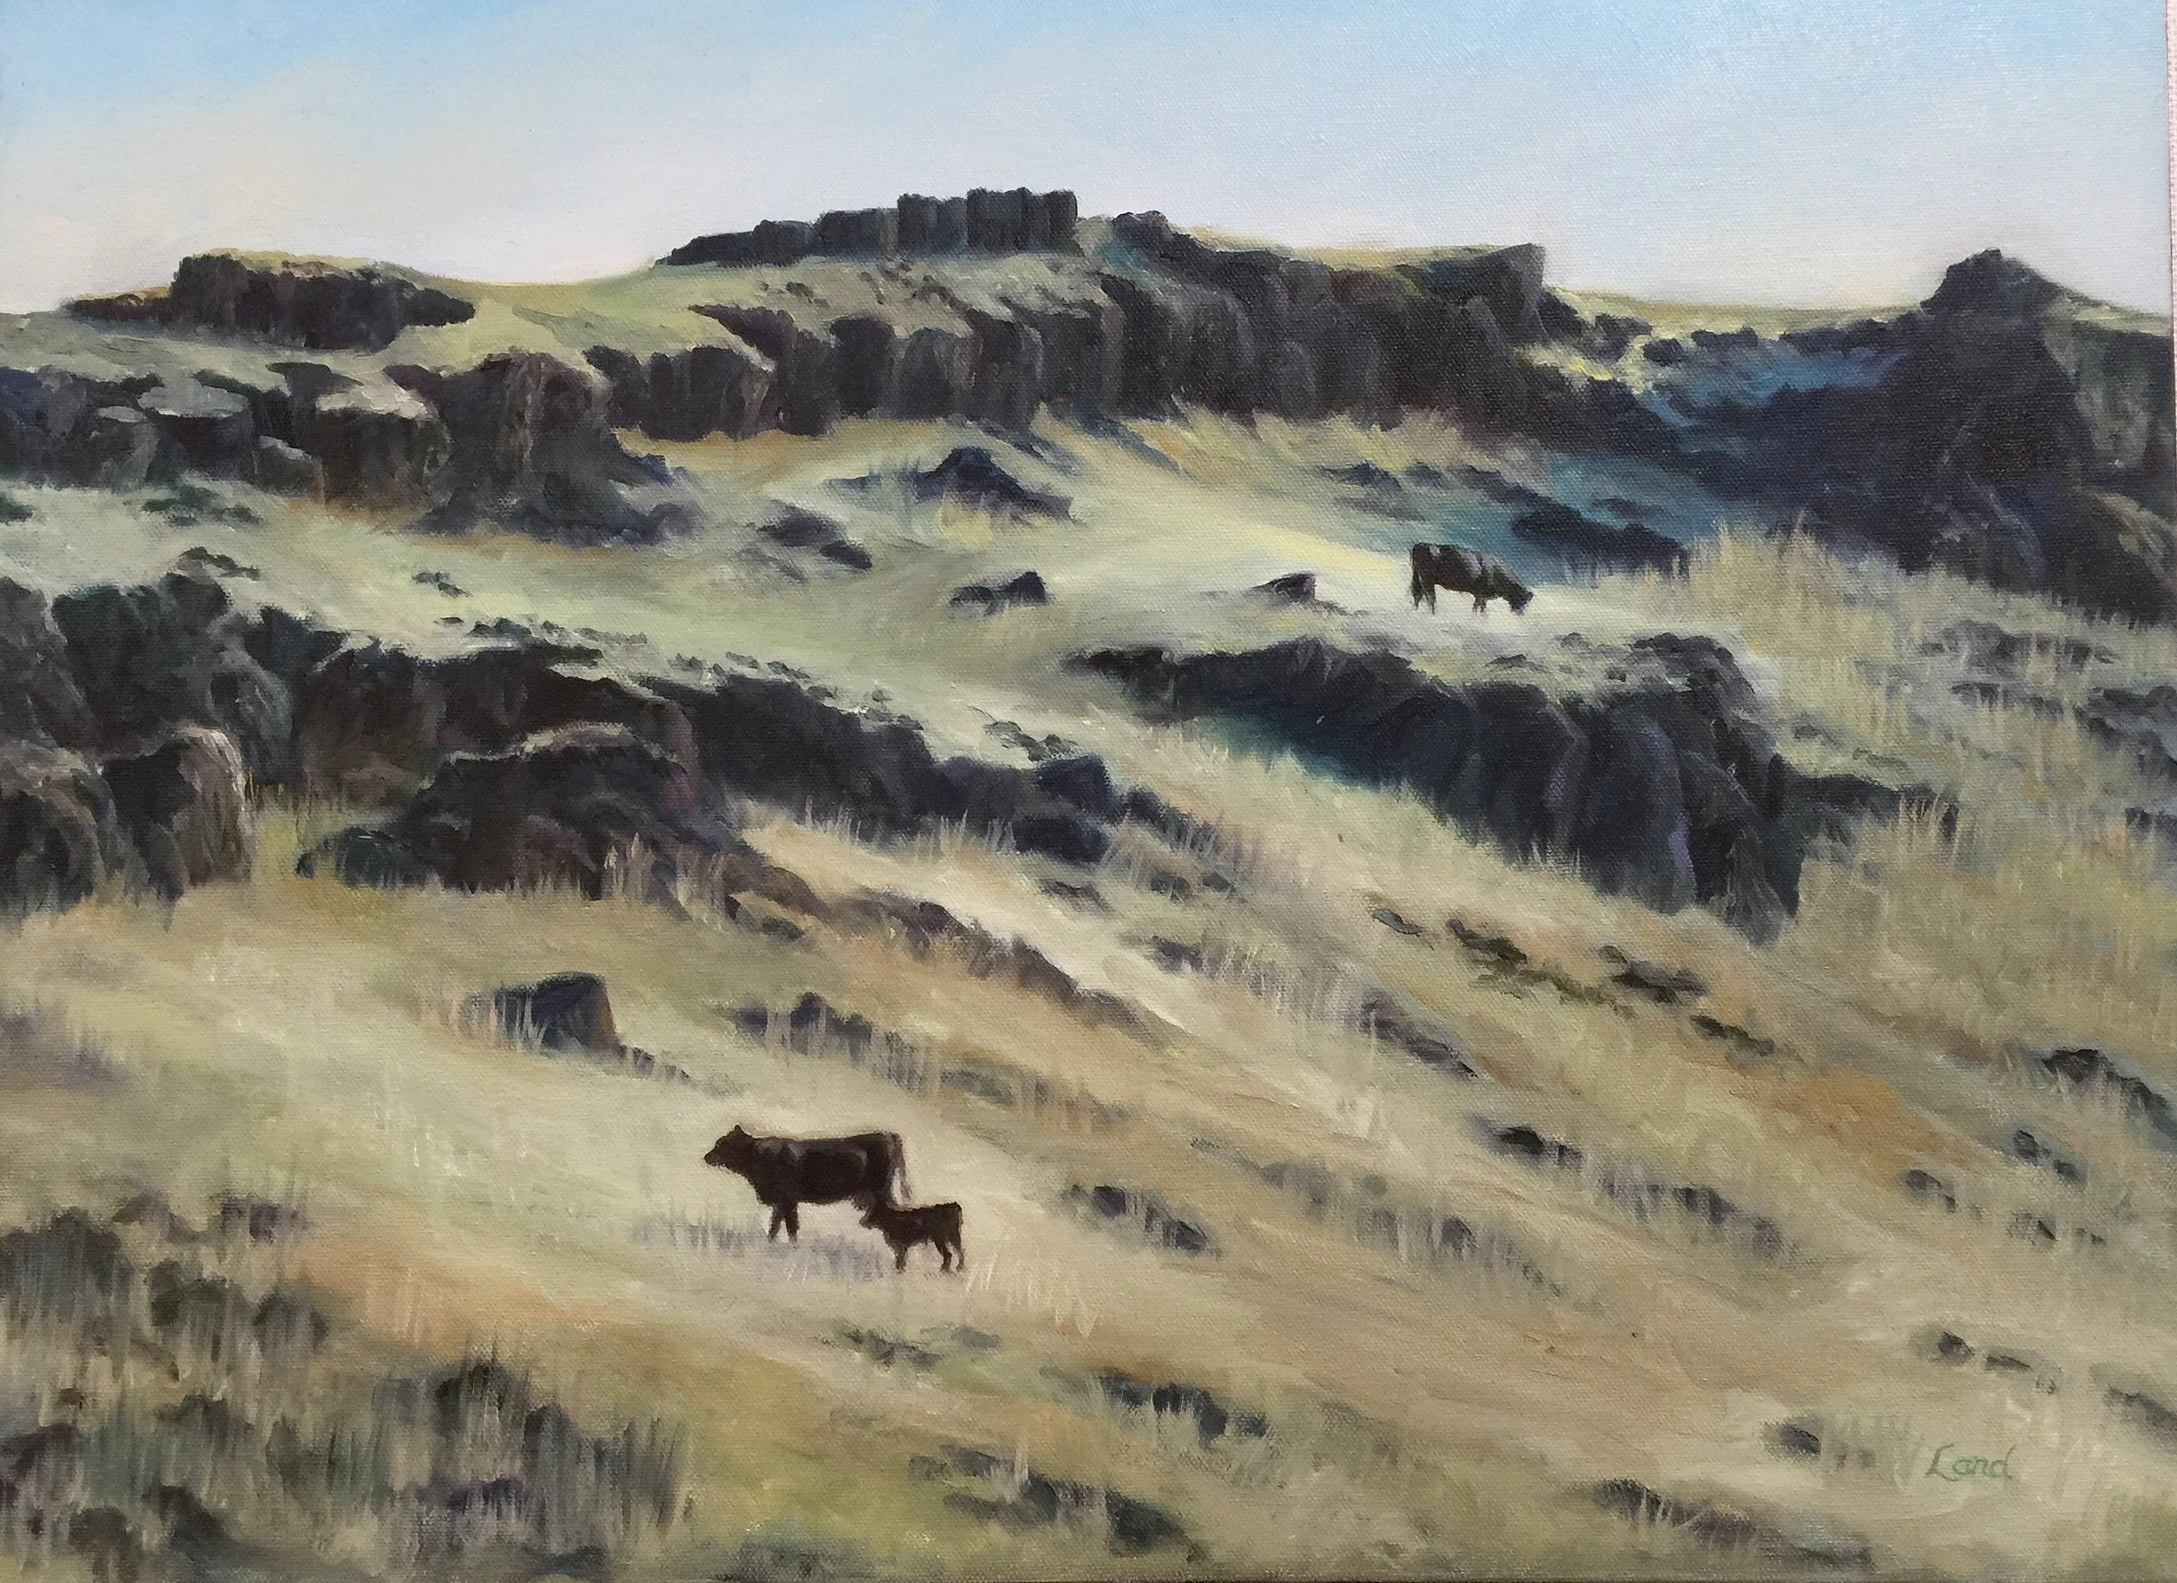 Cattle Grazing in the Columbia River Gorge (Honorable Mention)